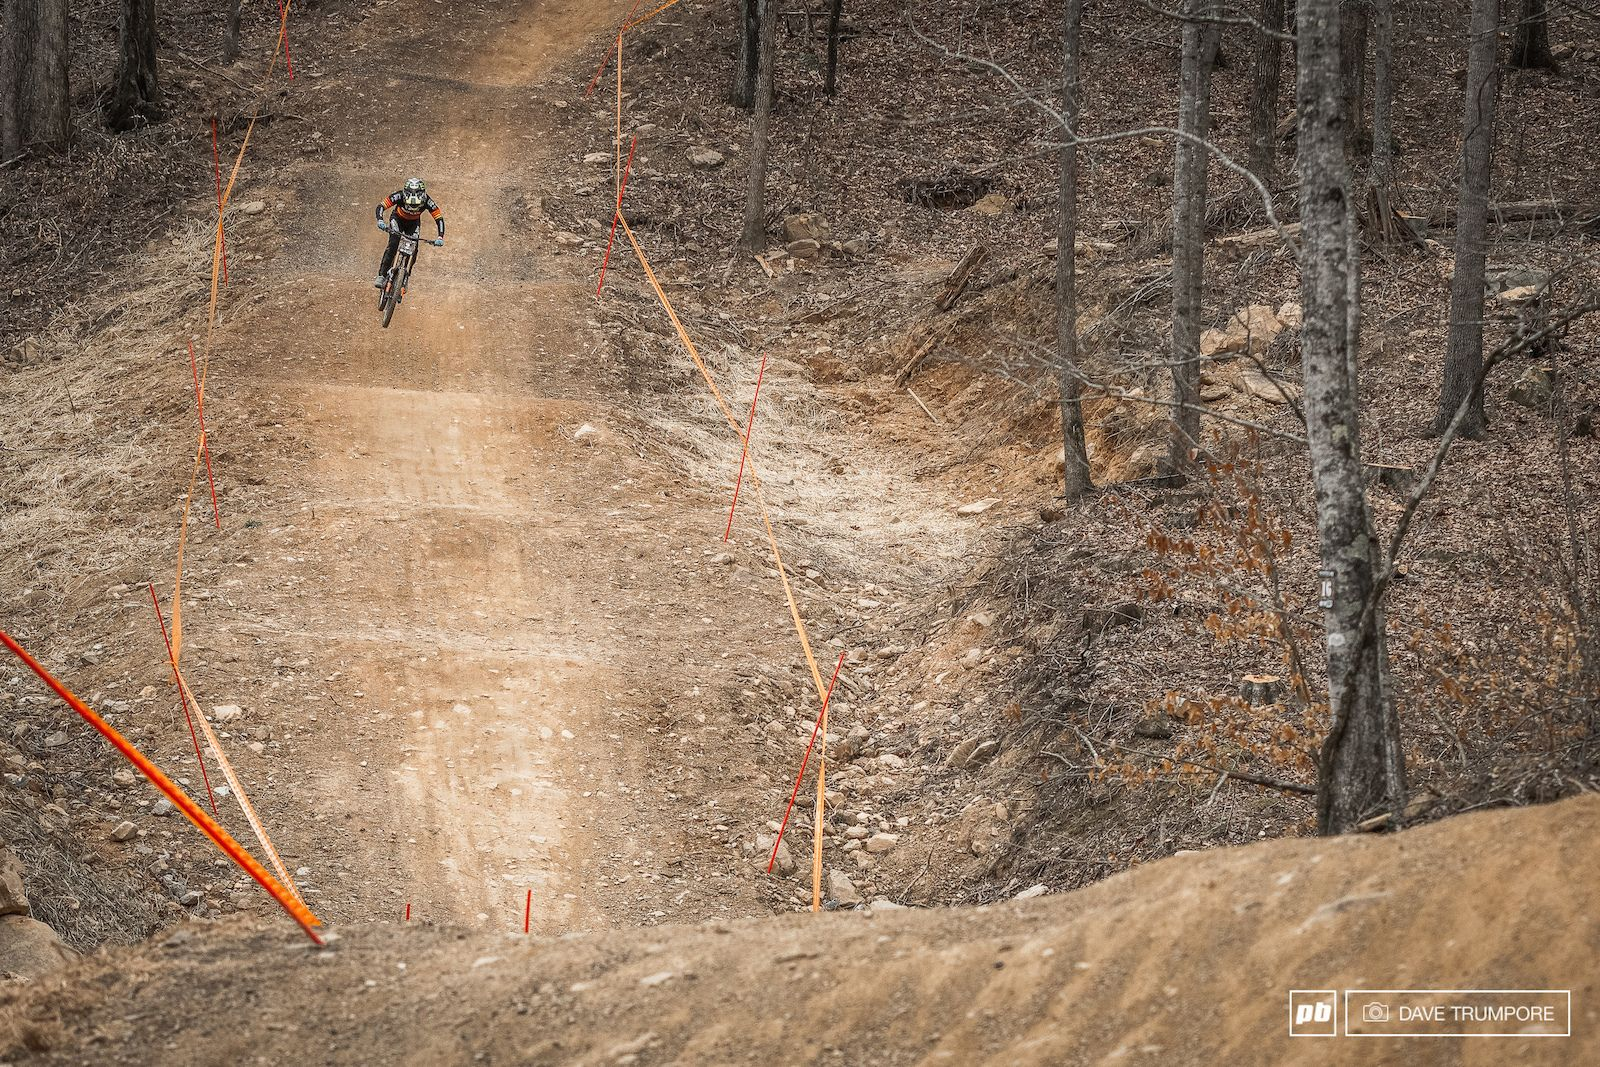 93fdeb327 Finals Photo Epic - Pro GRT  1 at Windrock Bike Park - Pinkbike